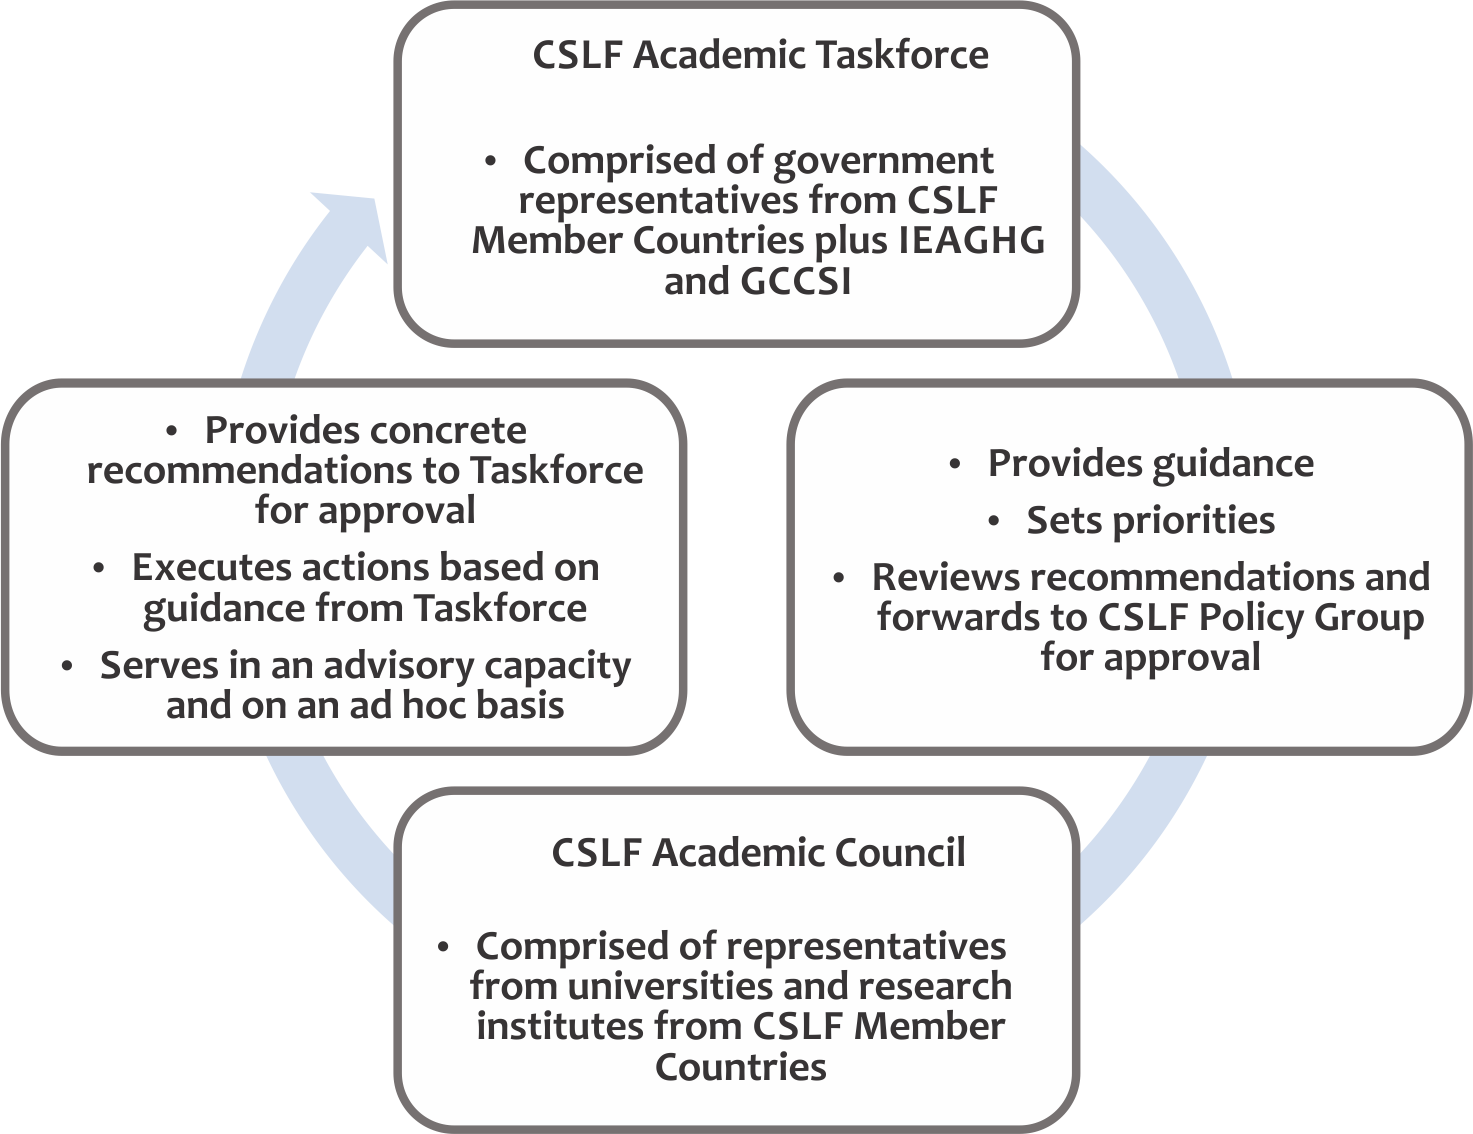 Diagram of Task Force and Academic Council responsibilities